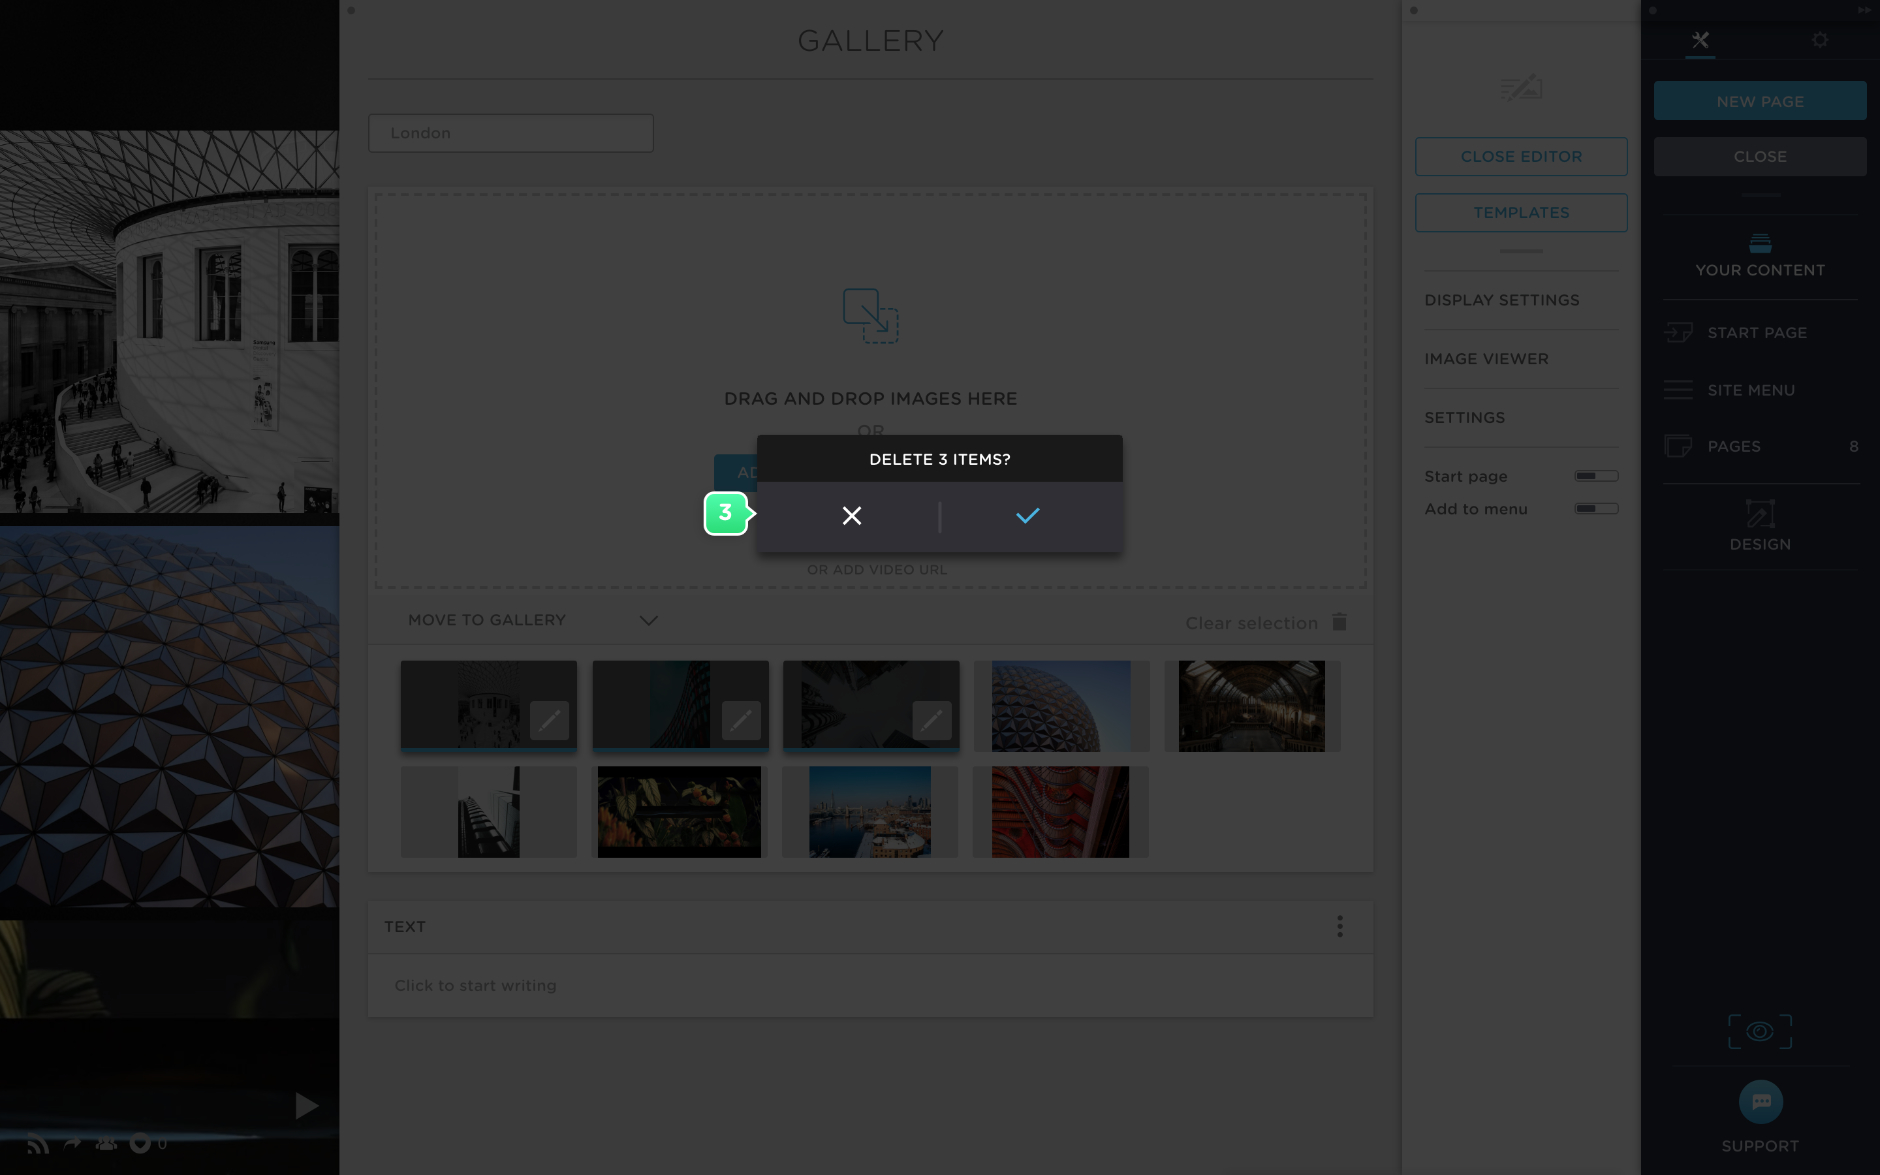 Delete images in a gallery in Portfoliobox